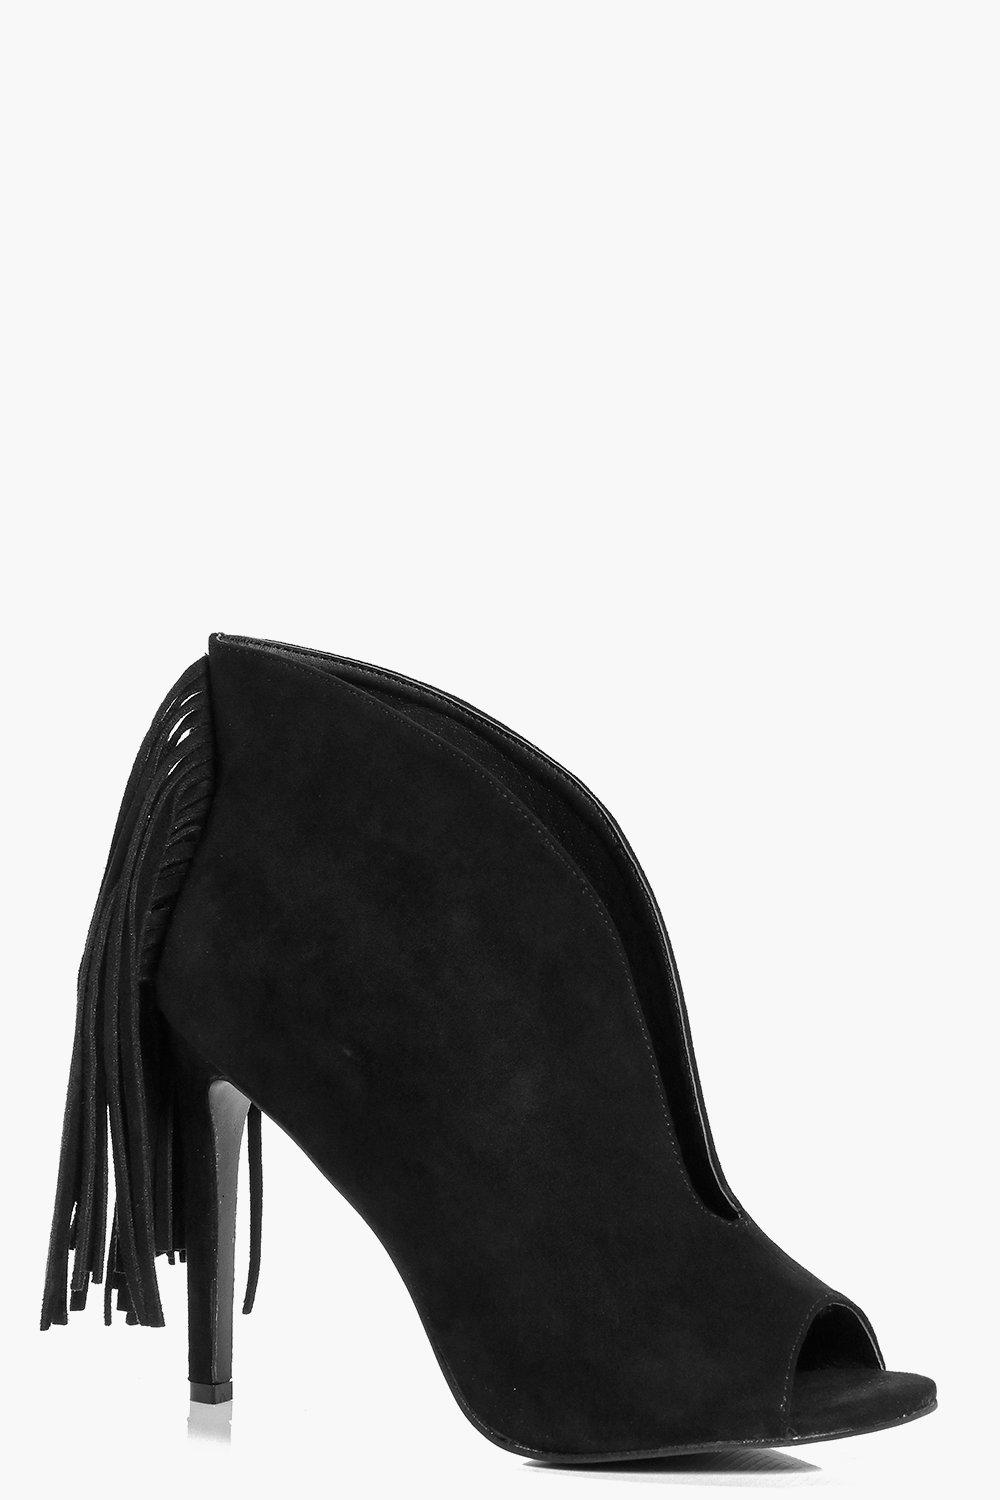 Maria Deep V Fringed Shoe Boot